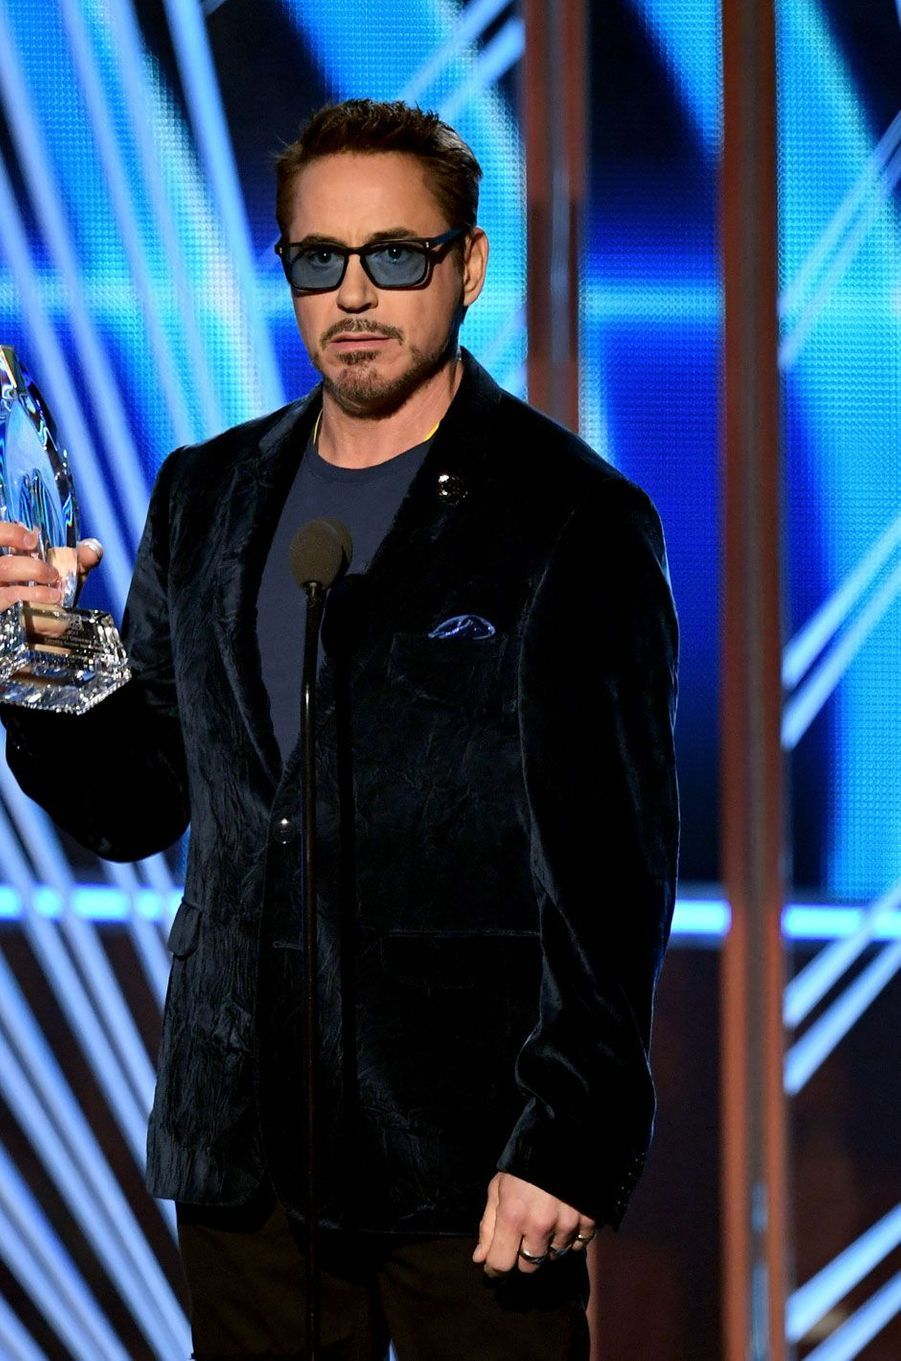 Robert Downey Jr., 48 millions de dollars